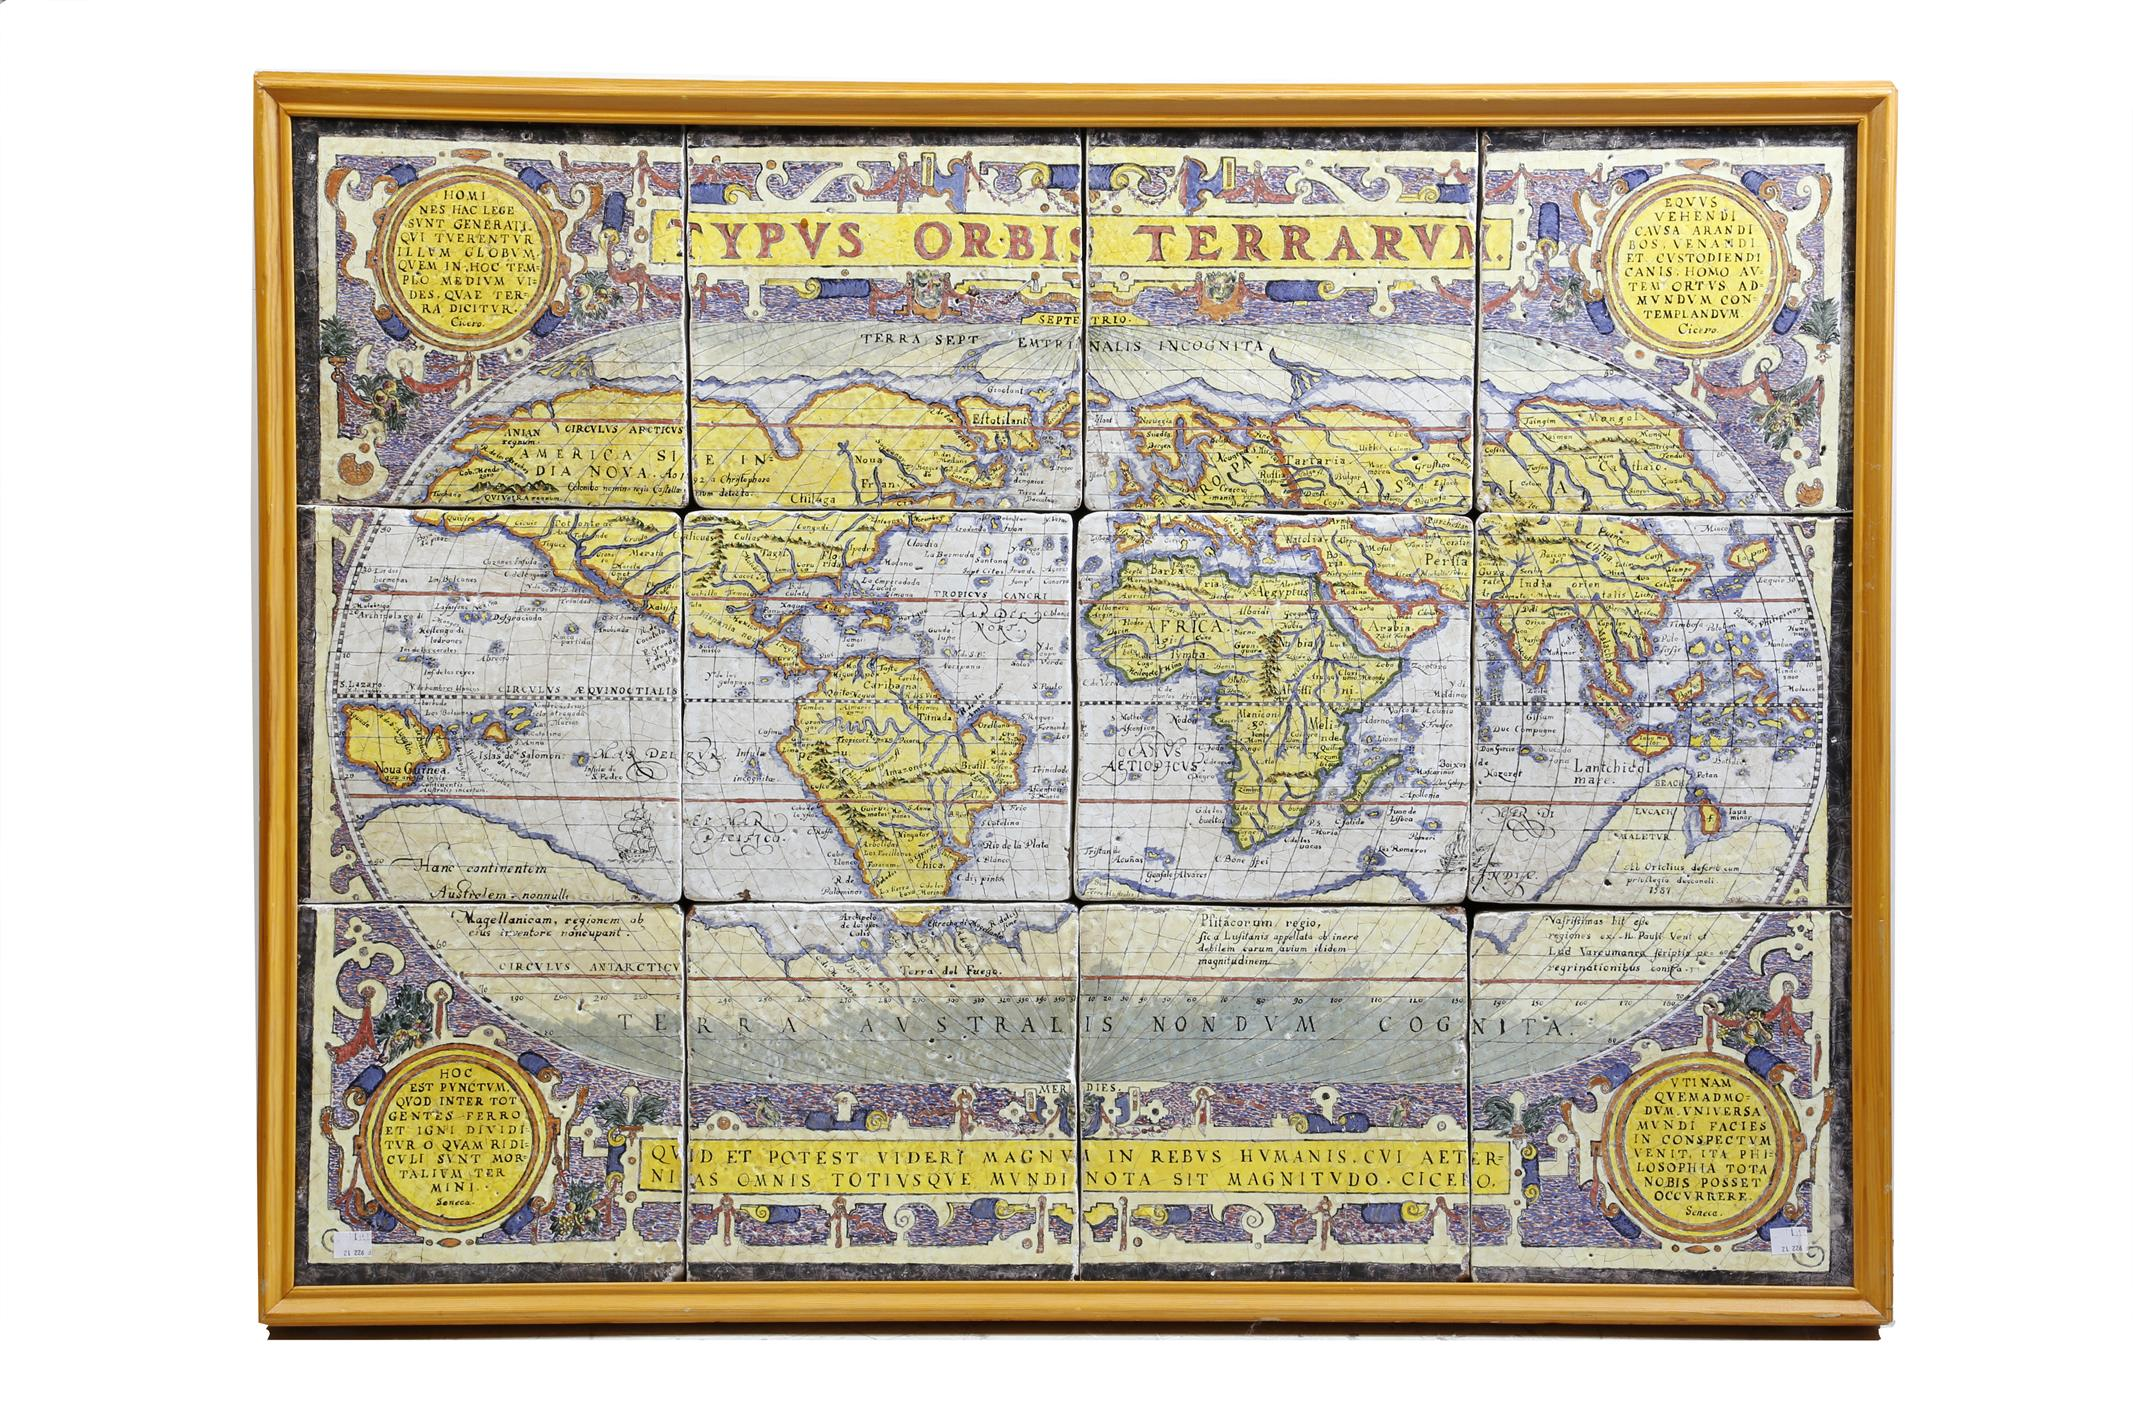 After abraham ortelius flemish lot 443 furniture works of art typus orbis terrarum a continental tin glazed pottery tile map of the world of twelve brightly coloured panels and with latin inscriptions from cicero gumiabroncs Image collections